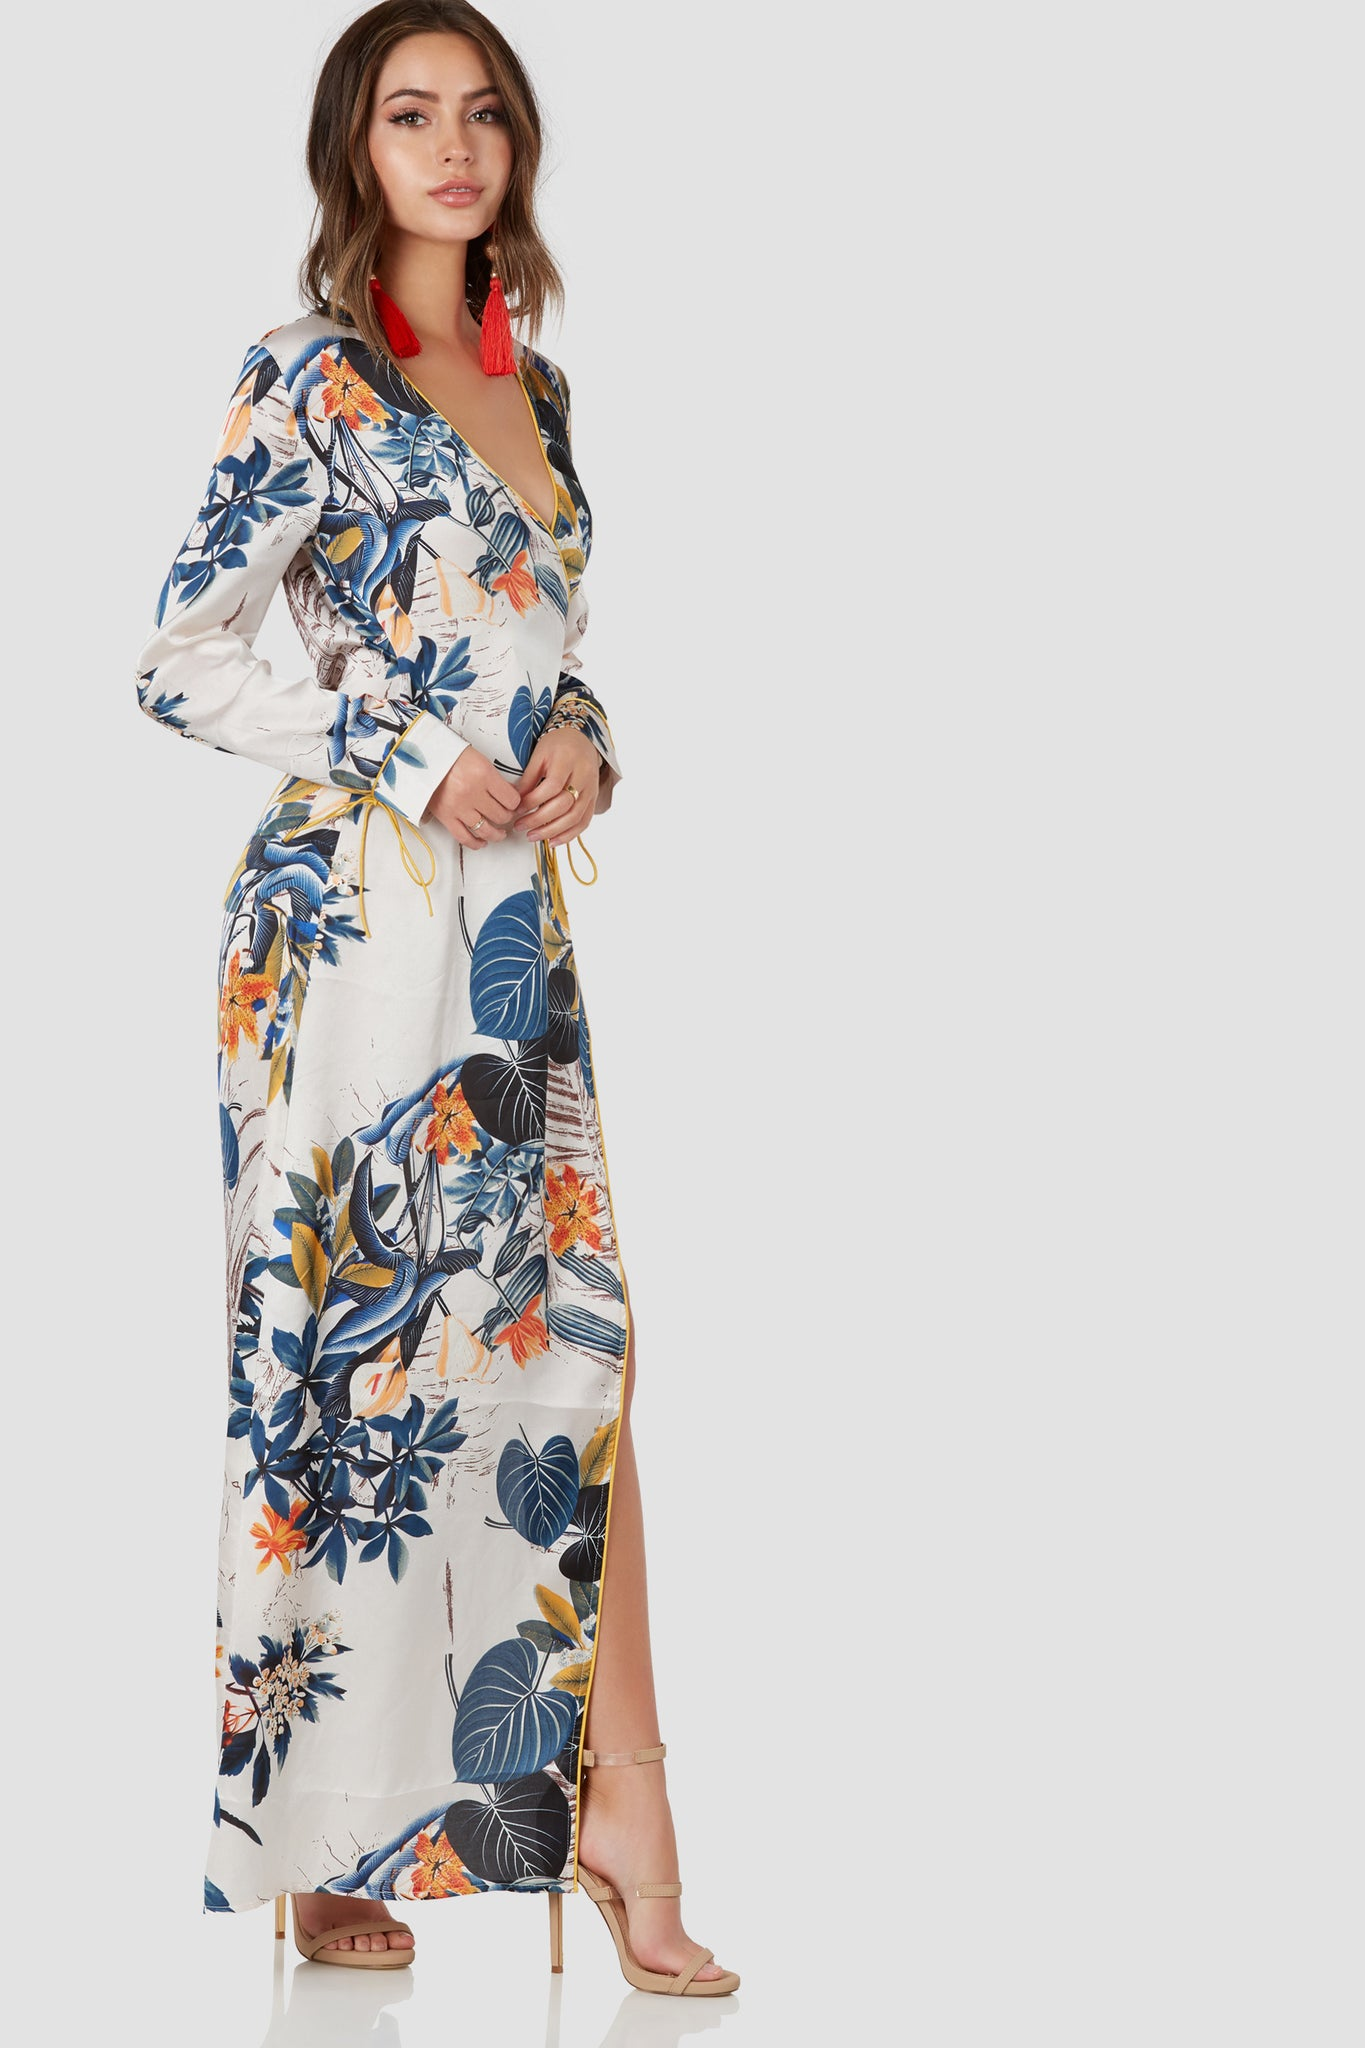 Stunning maxi dress with wrap design and botanical print throughout. Smooth satin-like finish with contrast piping and front tie closure.